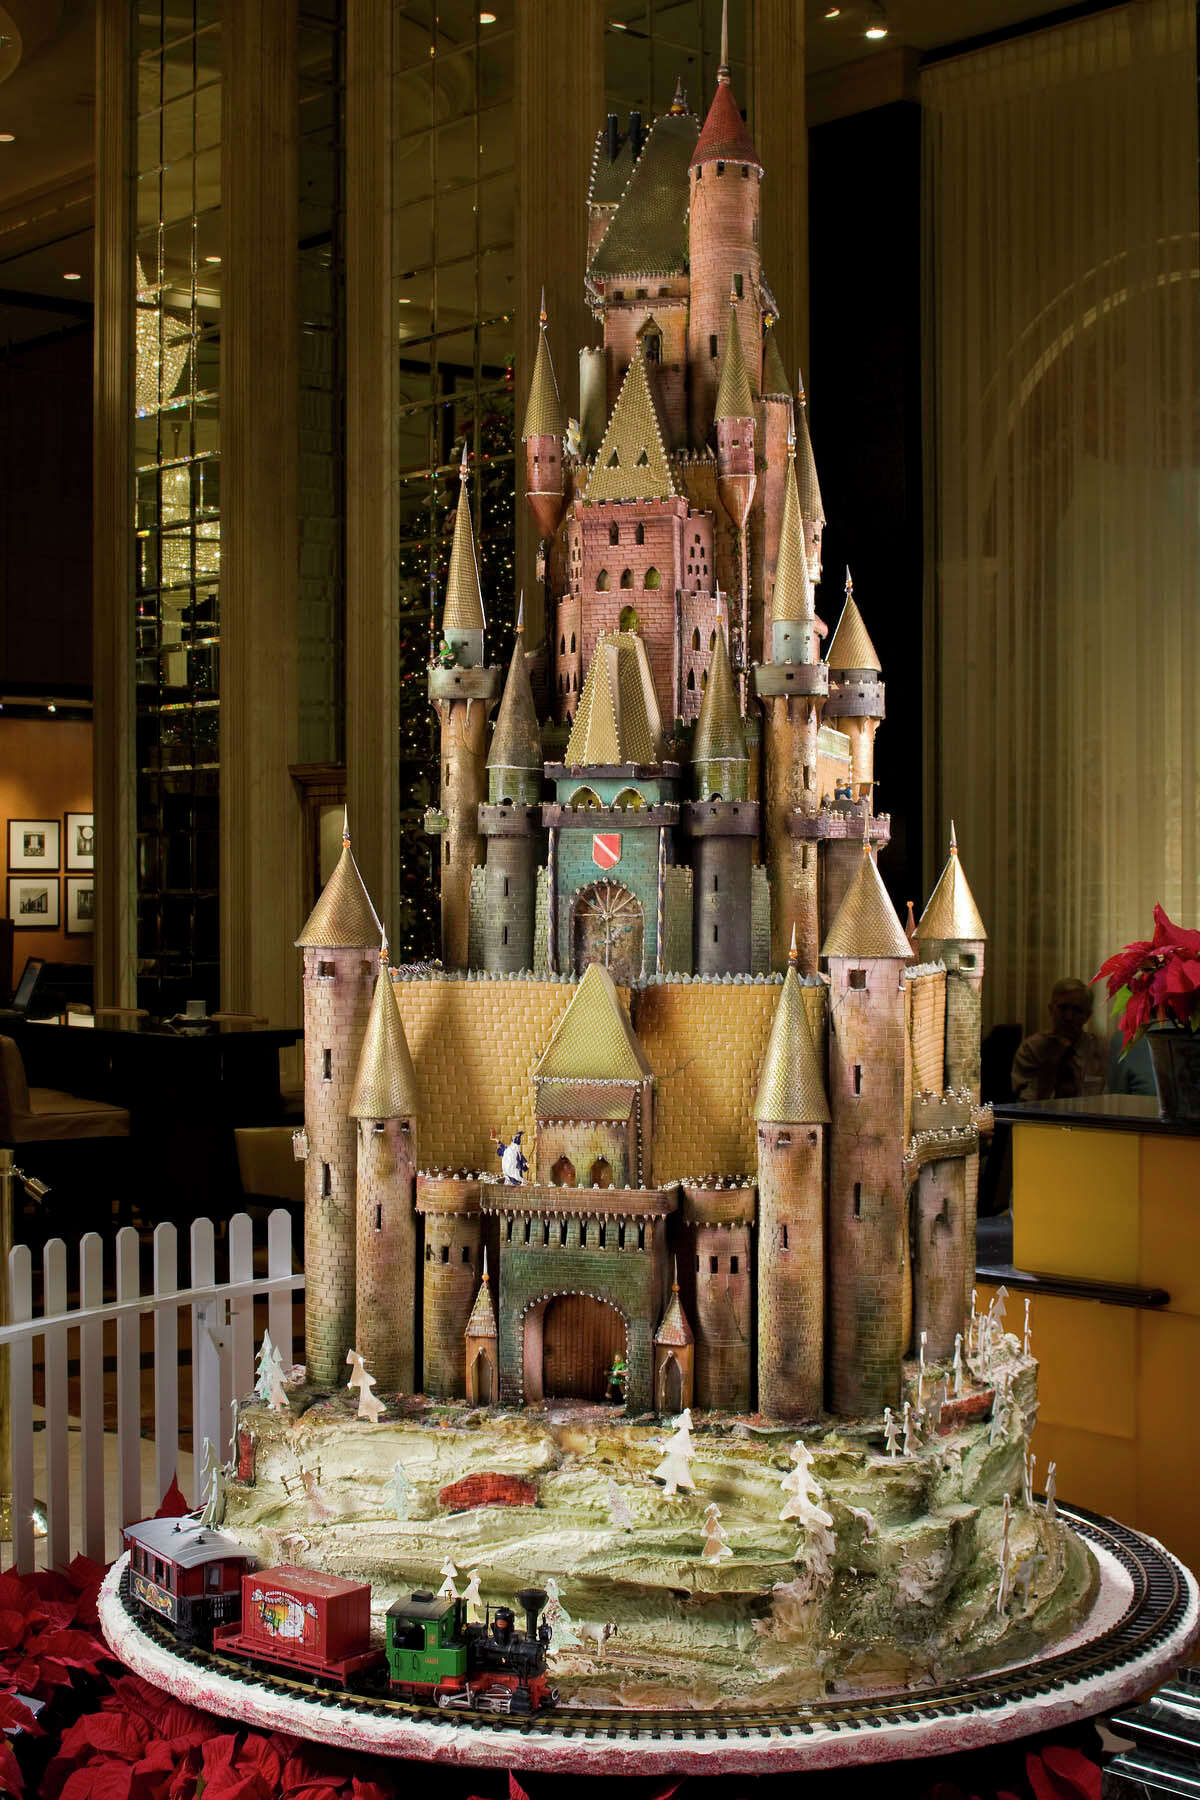 The medieval sugar castle after its unveiling at the Westin St. Francis in San Francisco in 2008.